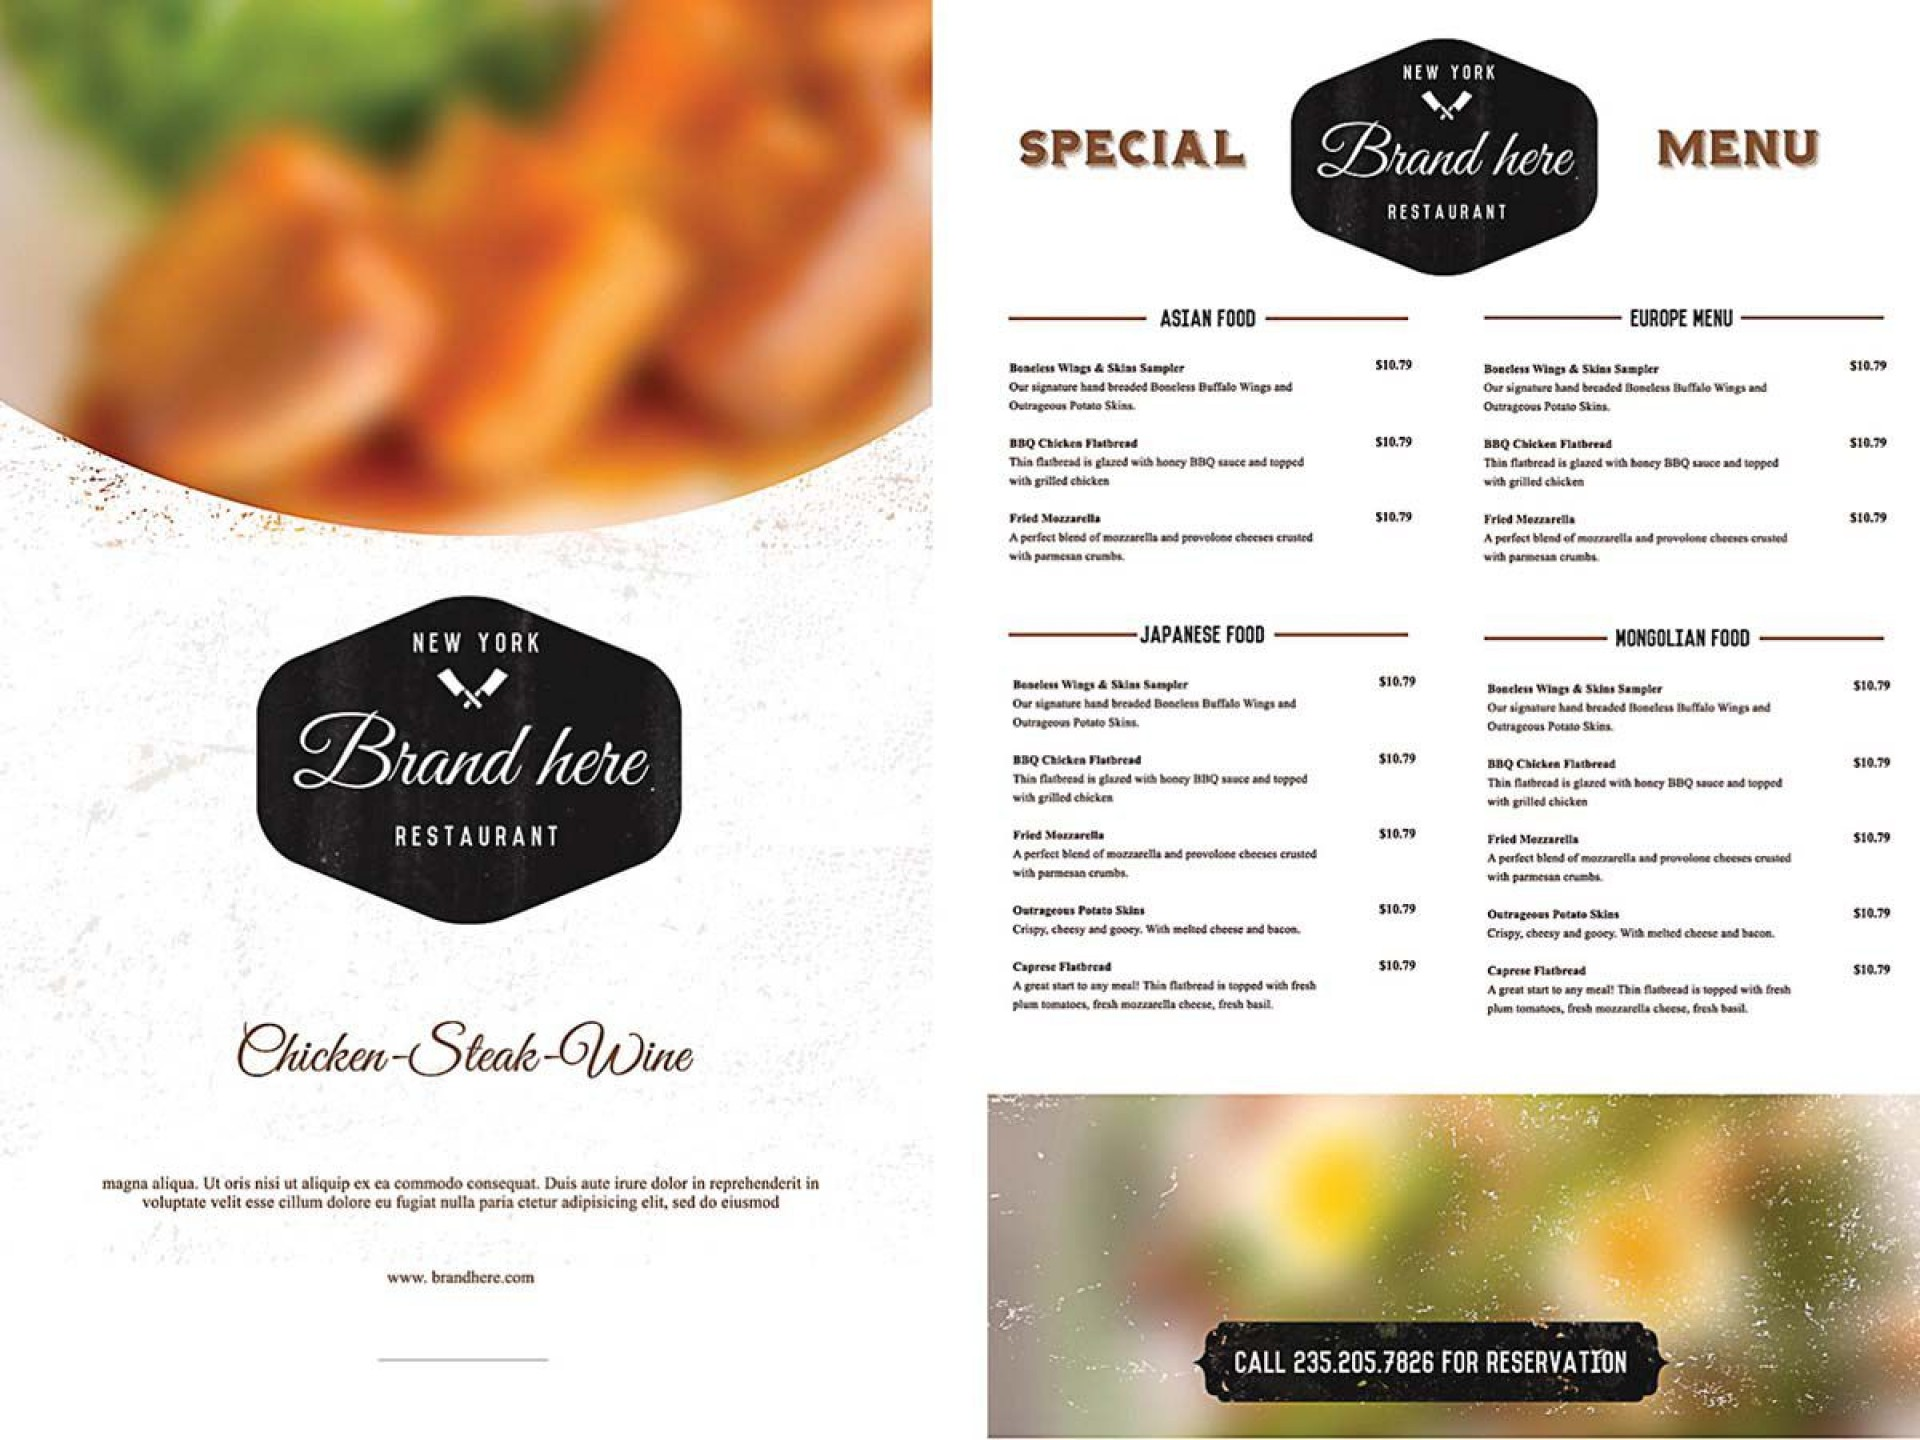 009 Phenomenal Menu Template Free Download For Restaurant Photo  Word Psd1920